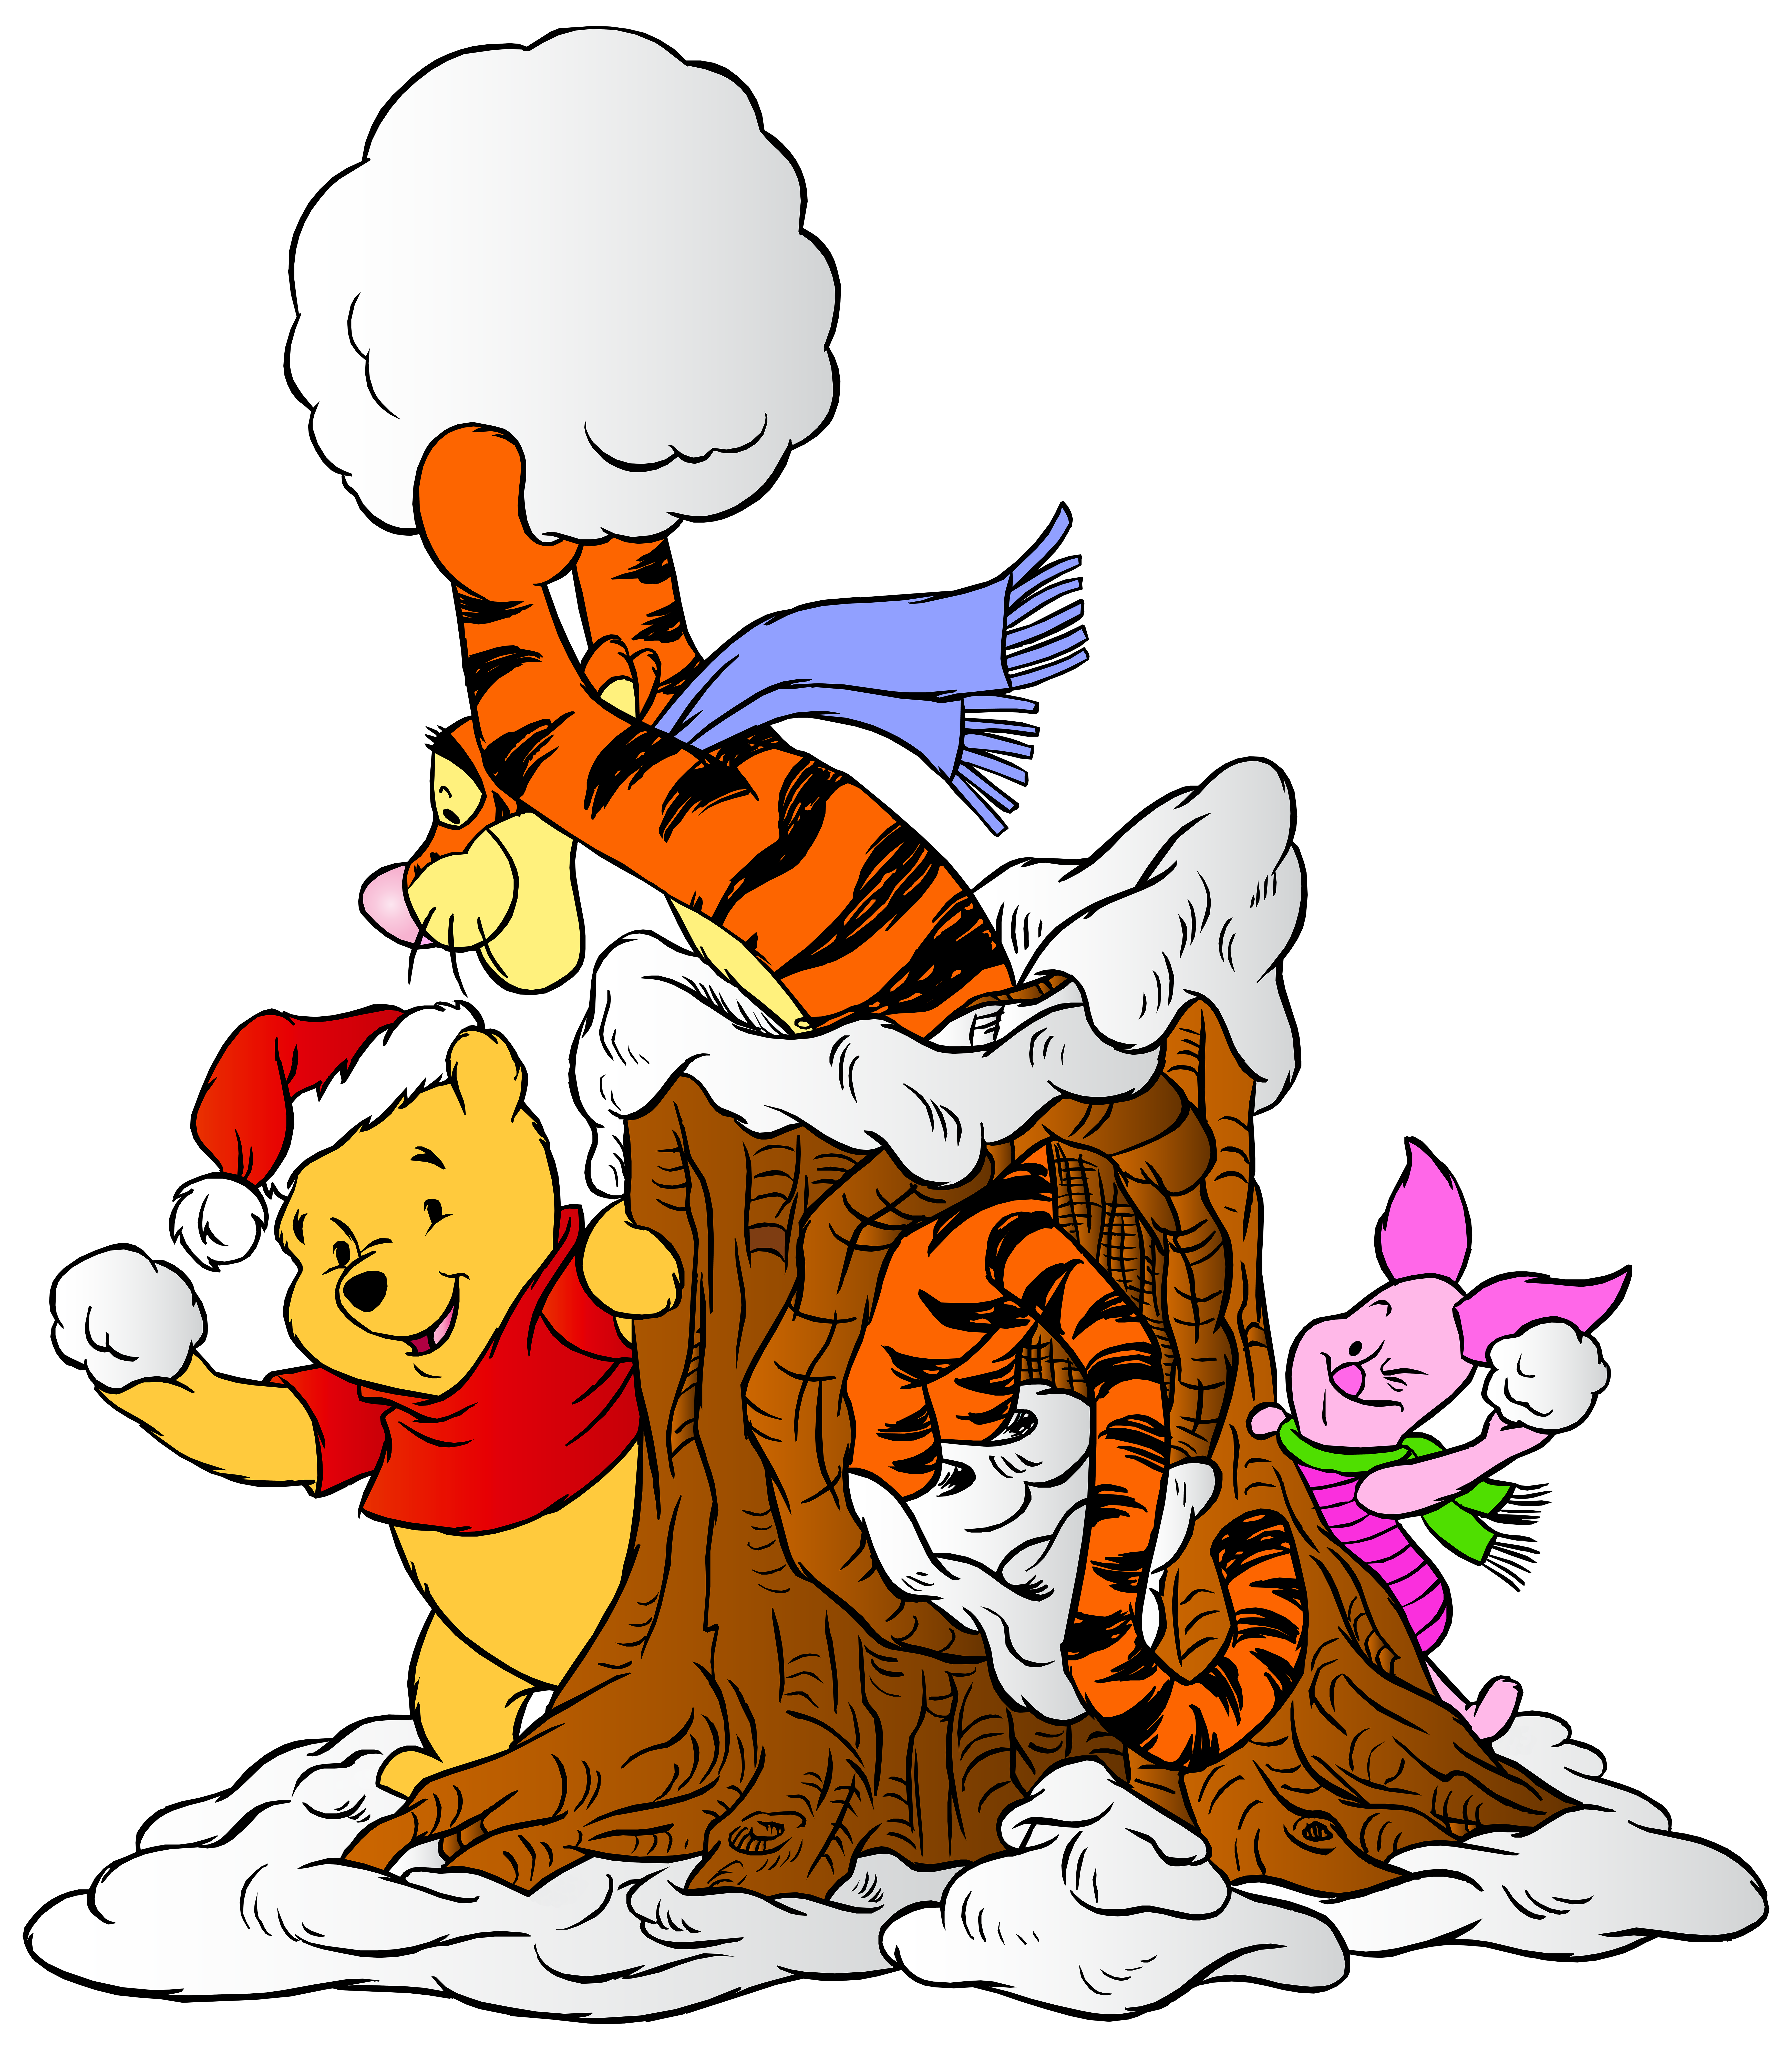 Winnie the pooh and. Friend clipart animated